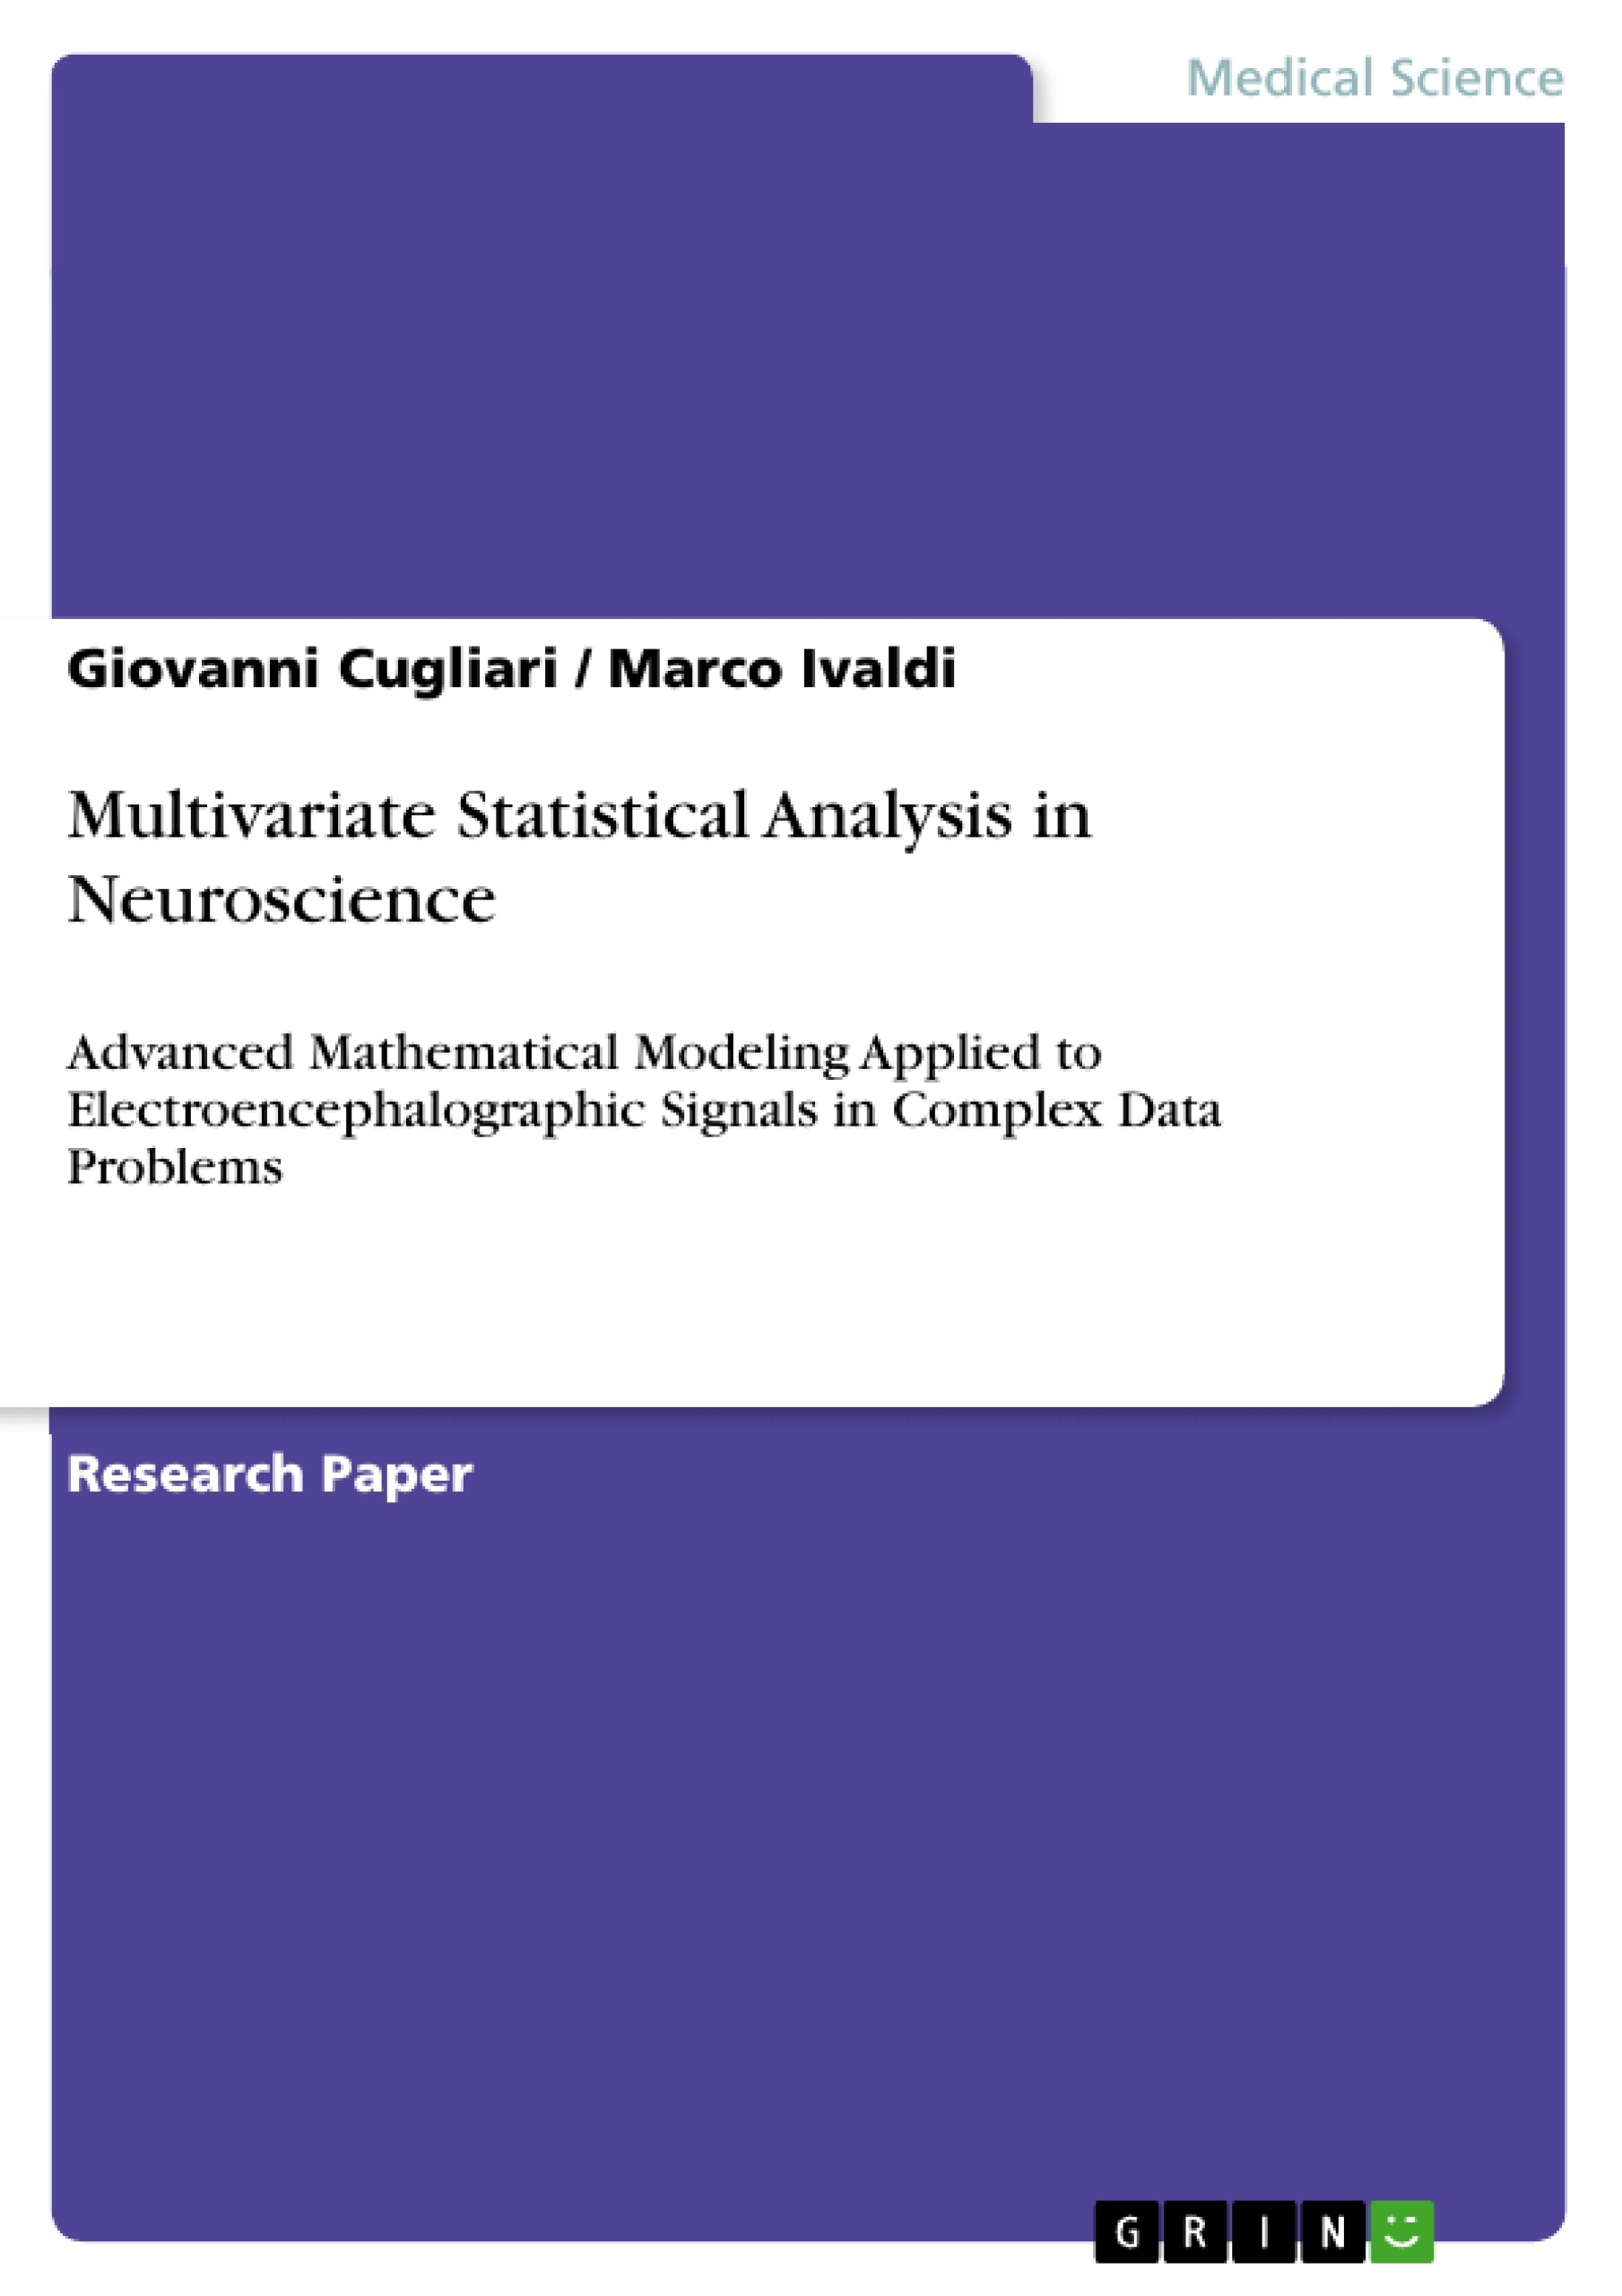 multivariate analysis thesis The manova (multivariate analysis of variance) is a type of multivariate analysis used to analyze data that involves more than one dependent variable at a time.